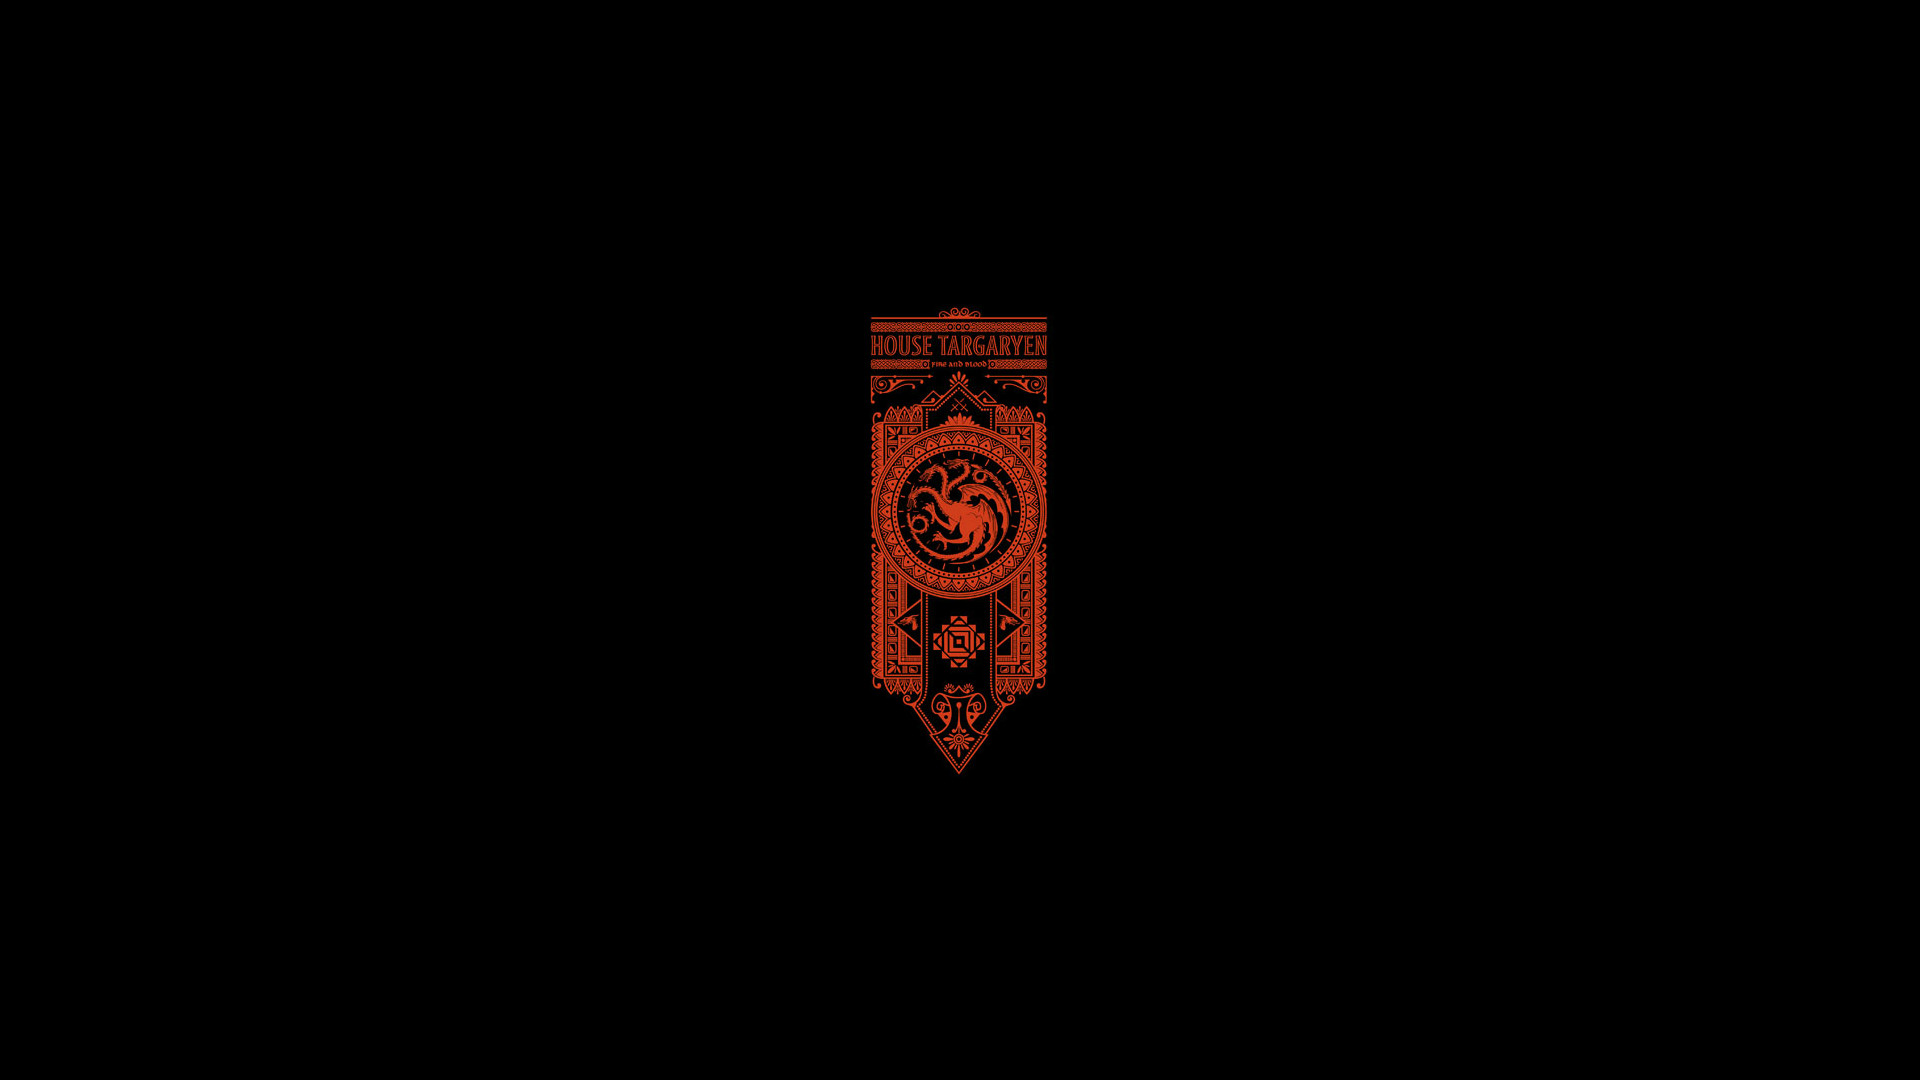 Game of Thrones Song of Ice and Fire Targaryen Minimal Black wallpaper |  | 100591 | WallpaperUP